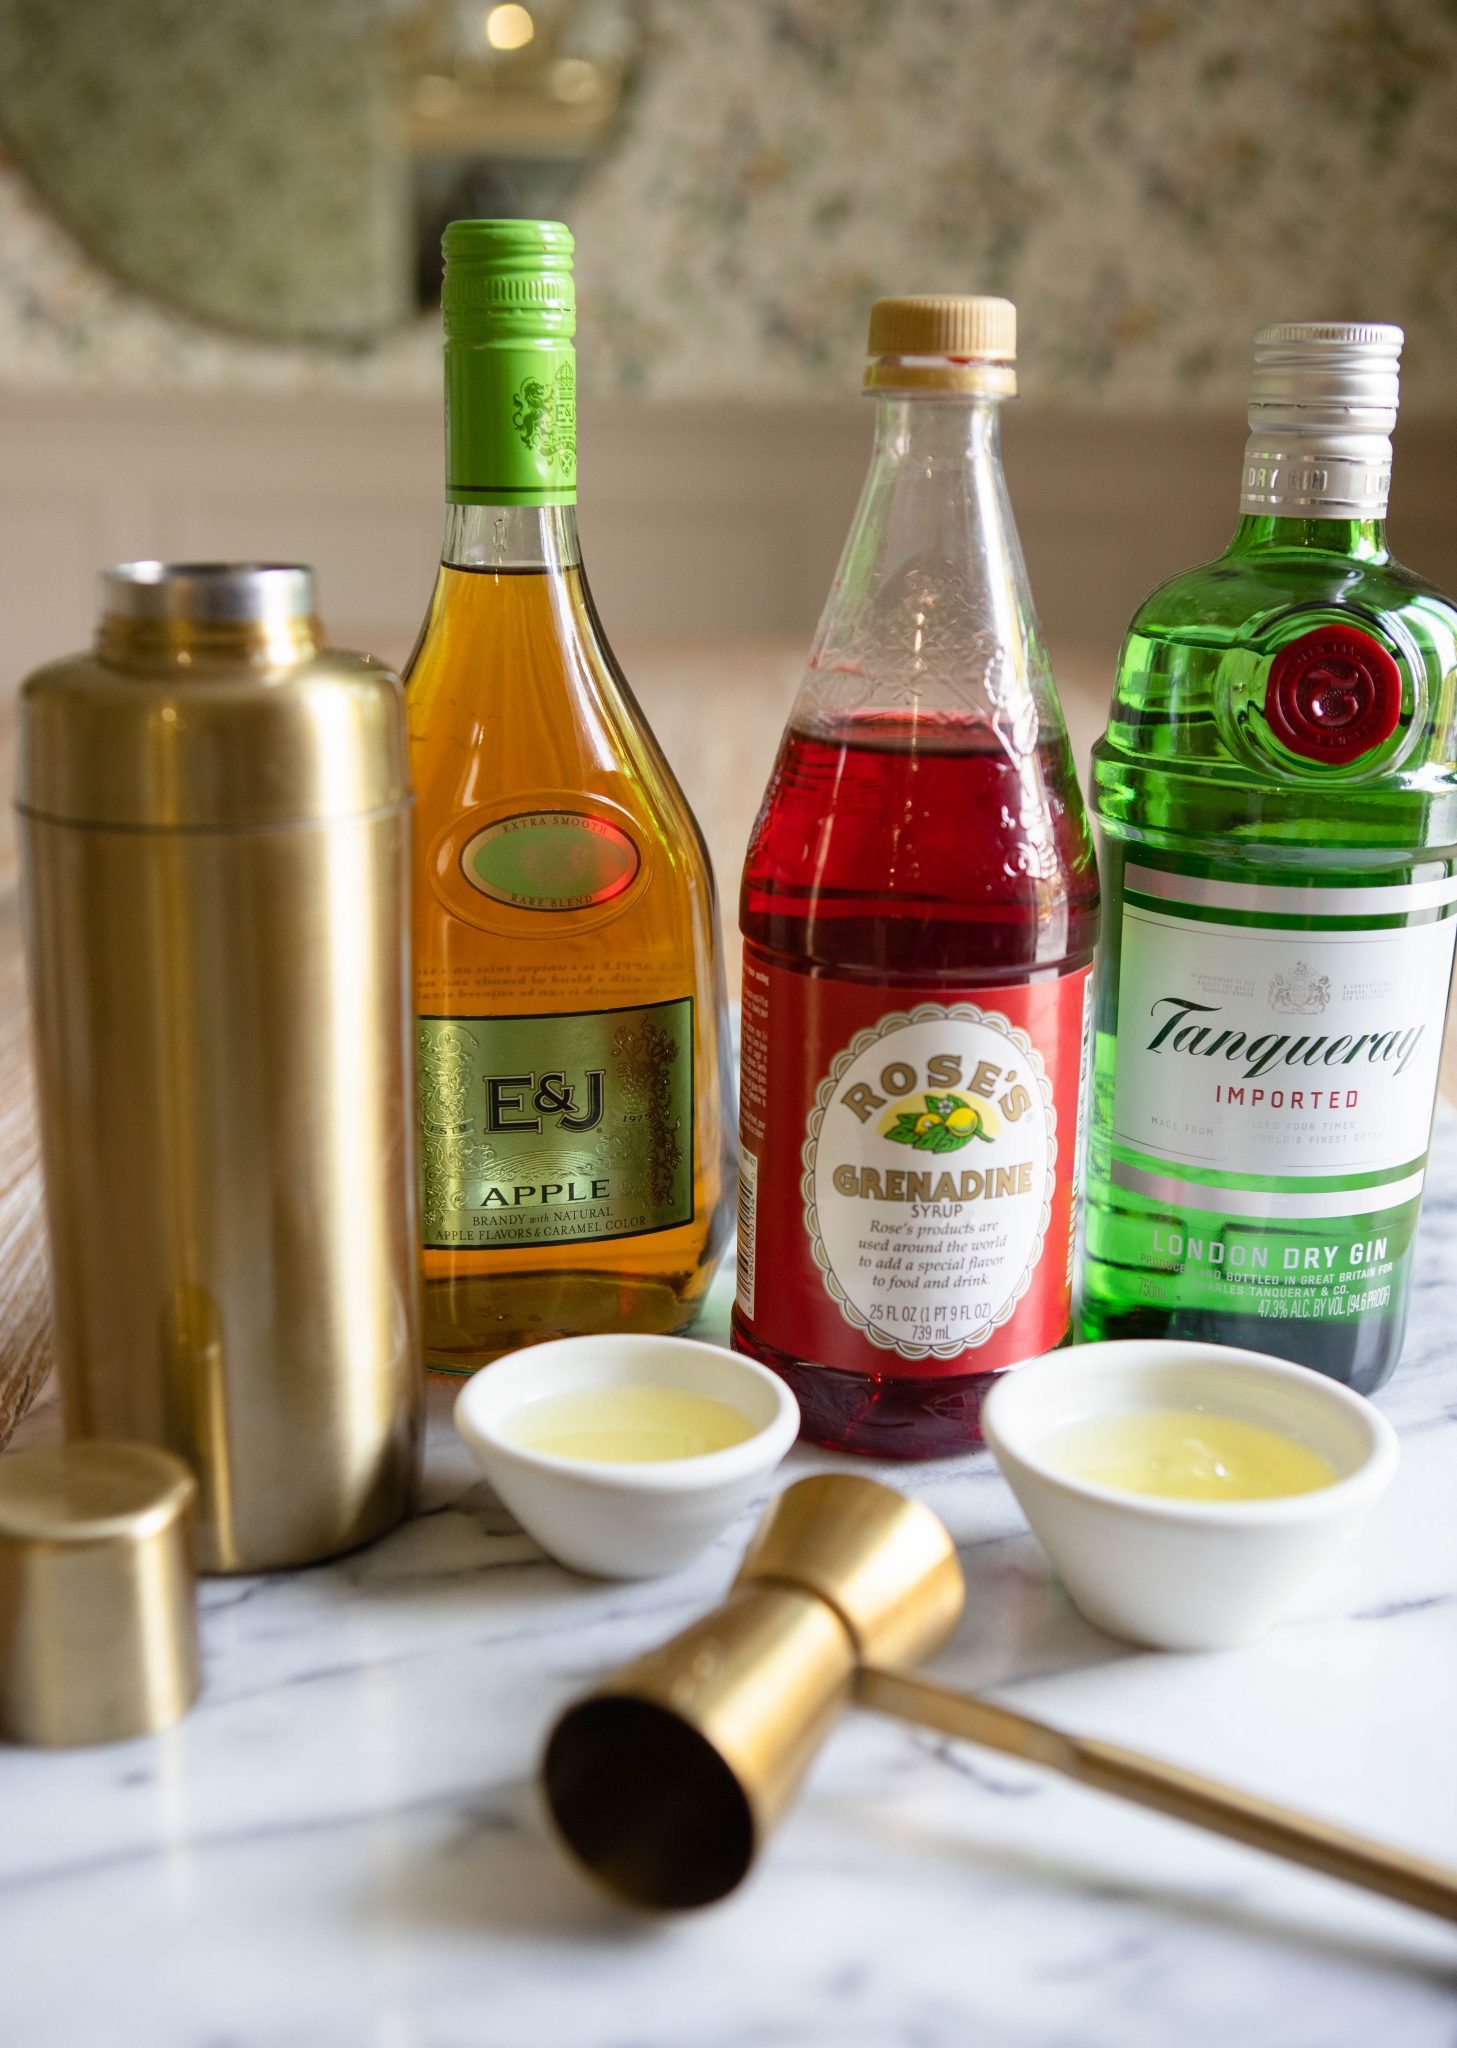 Ingredients to make a pink lady cocktail